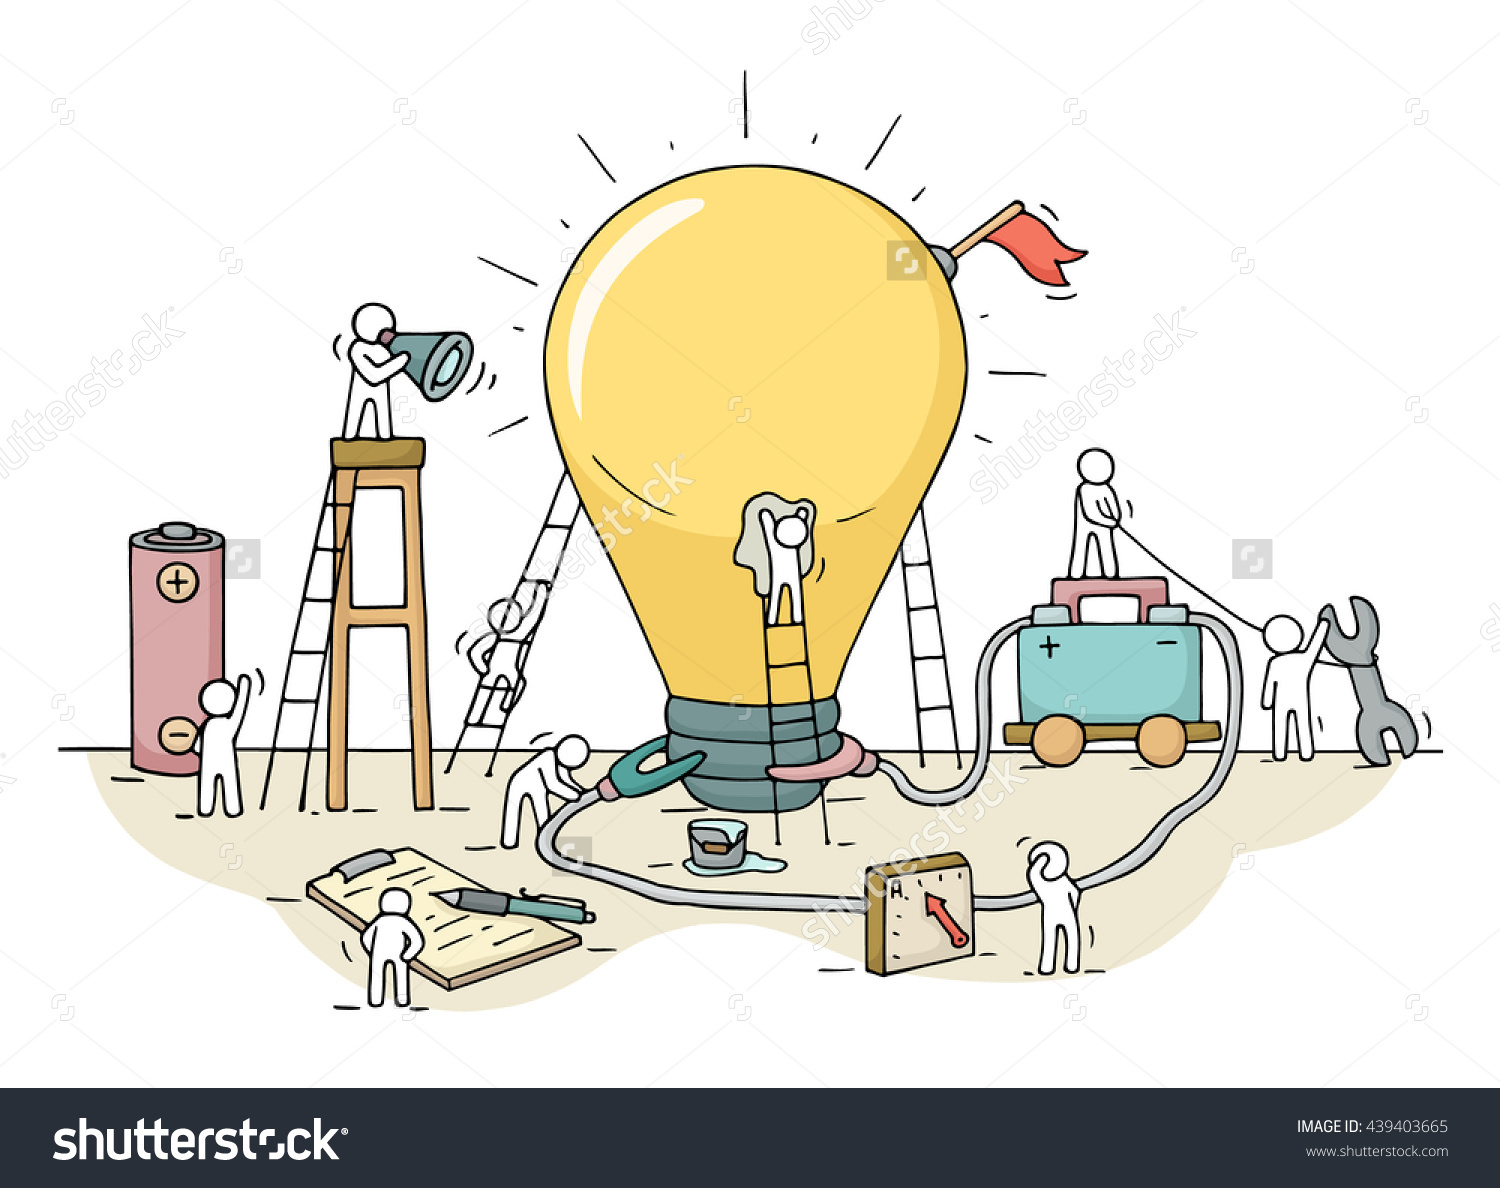 Sketch Lamp Idea Construction Working Little Stock Vector.